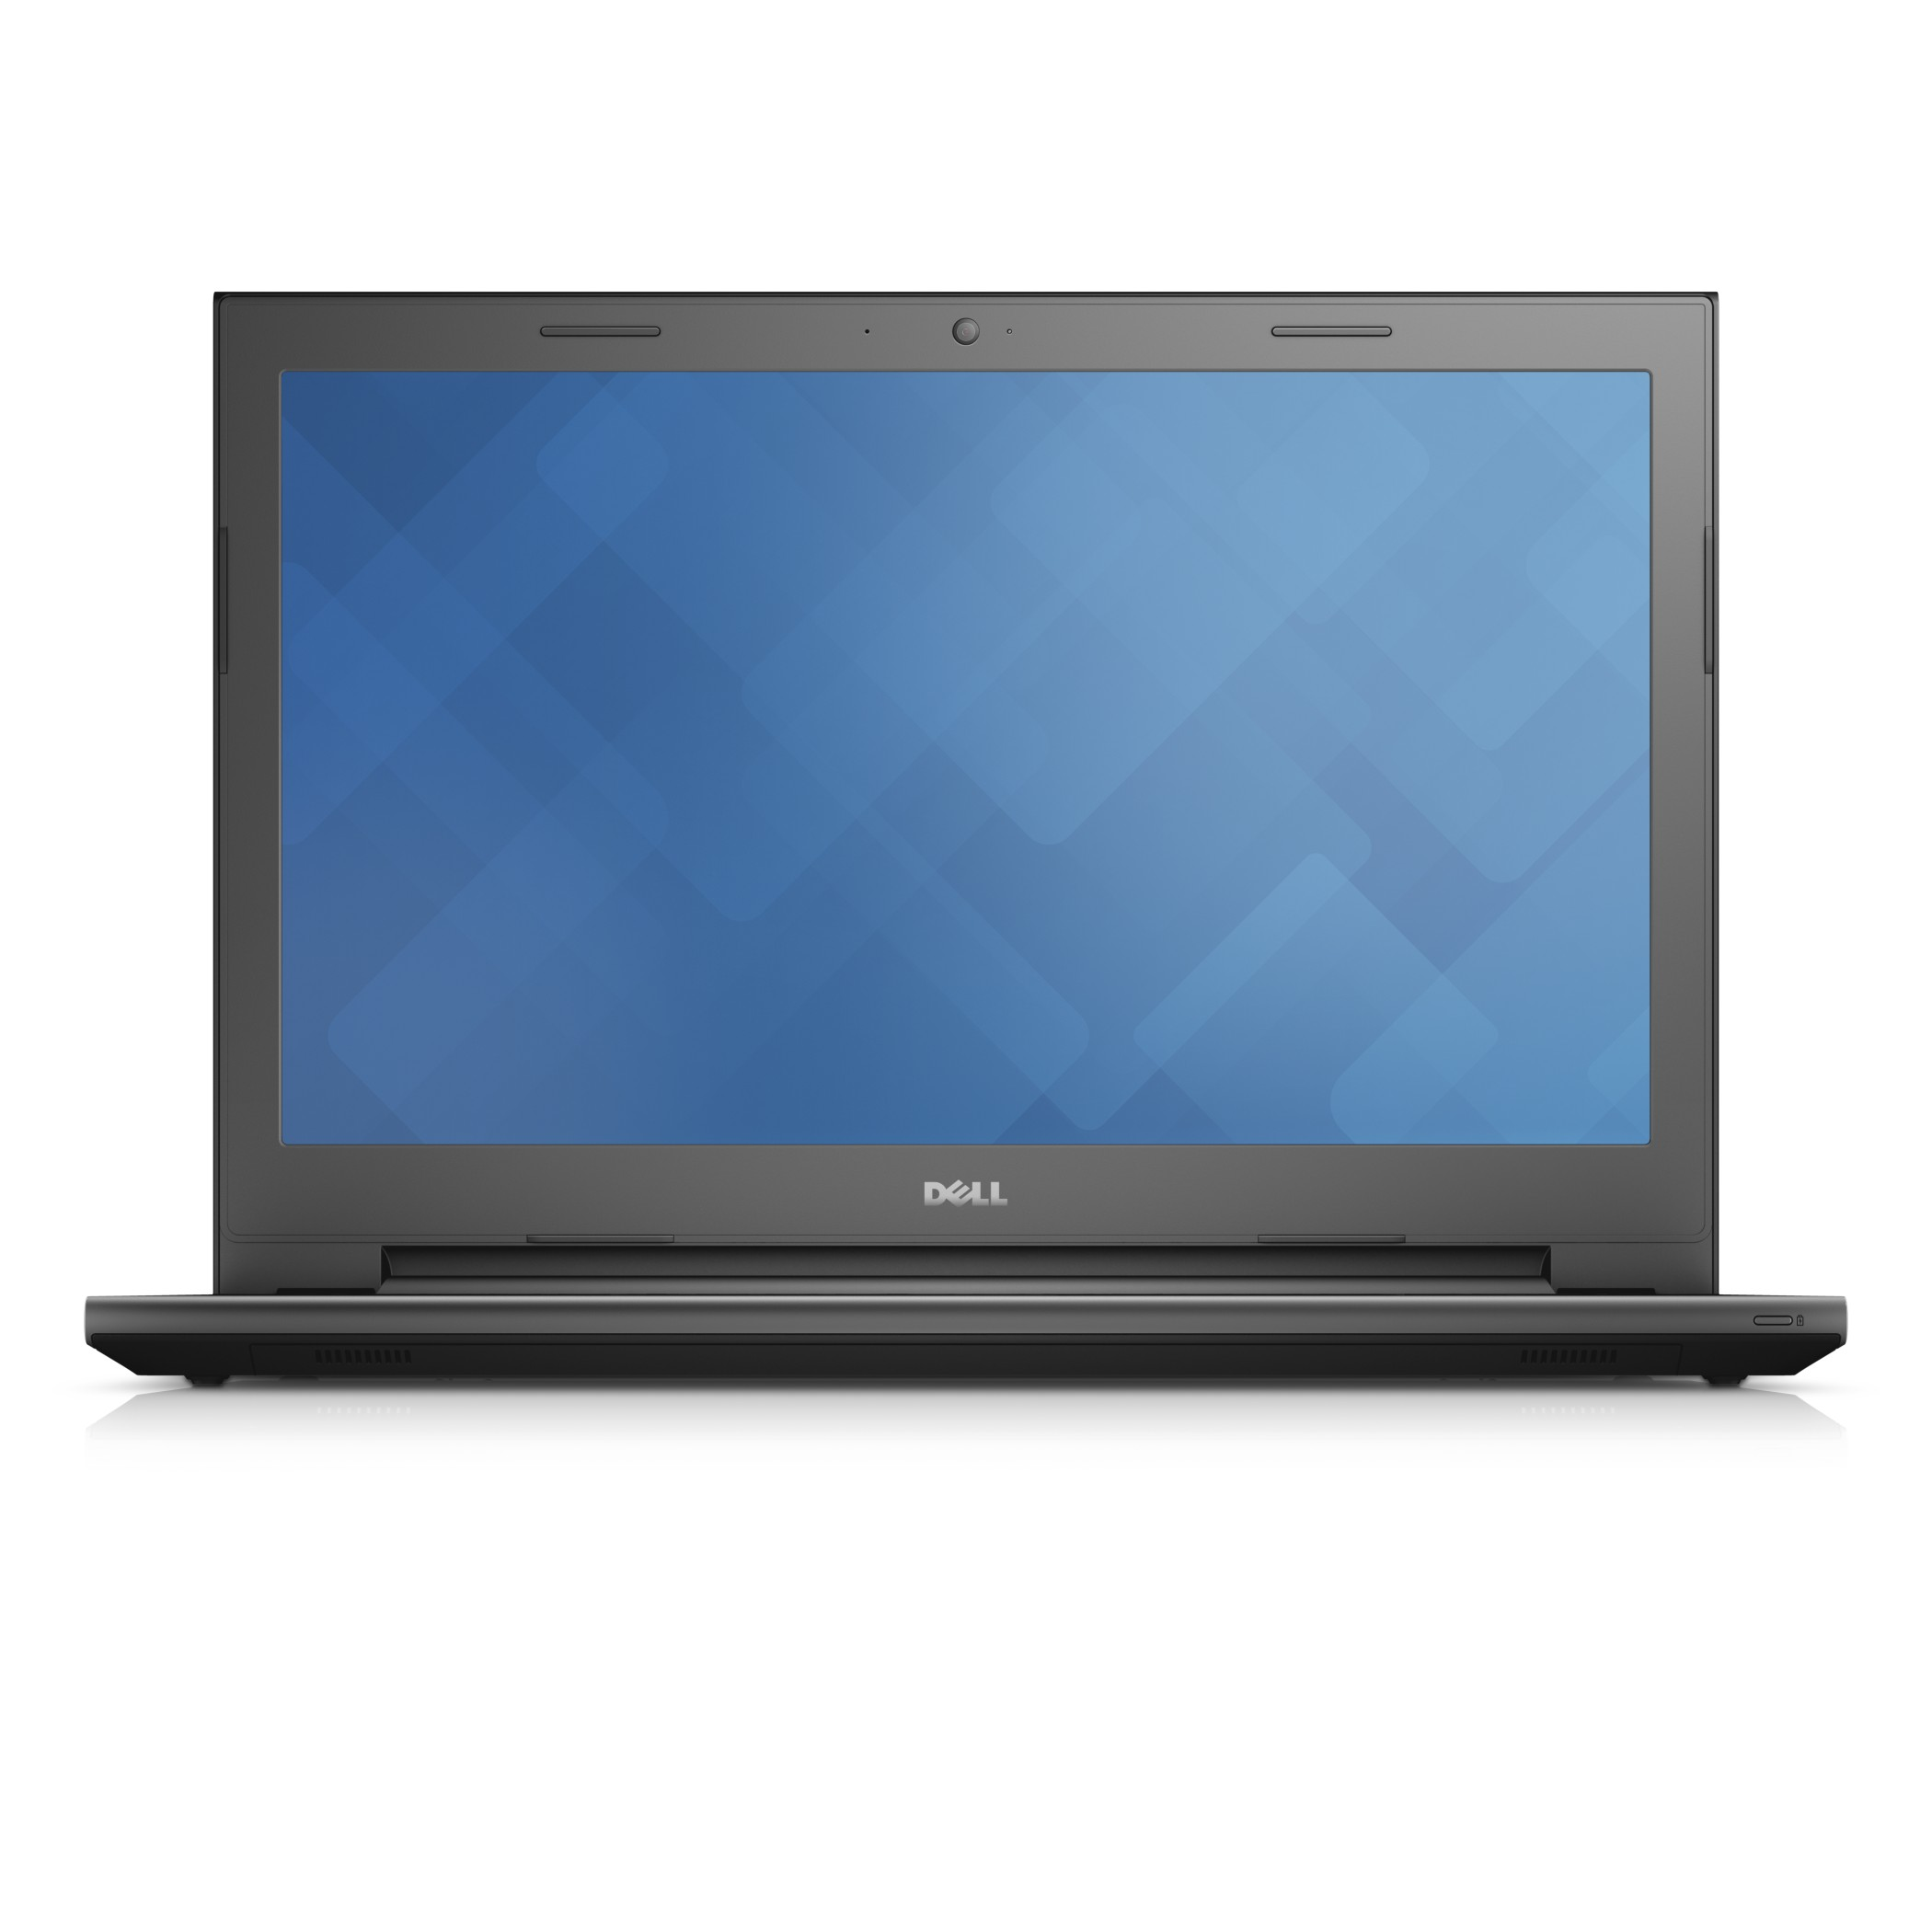 Vostro 15 3000 Series Notebook